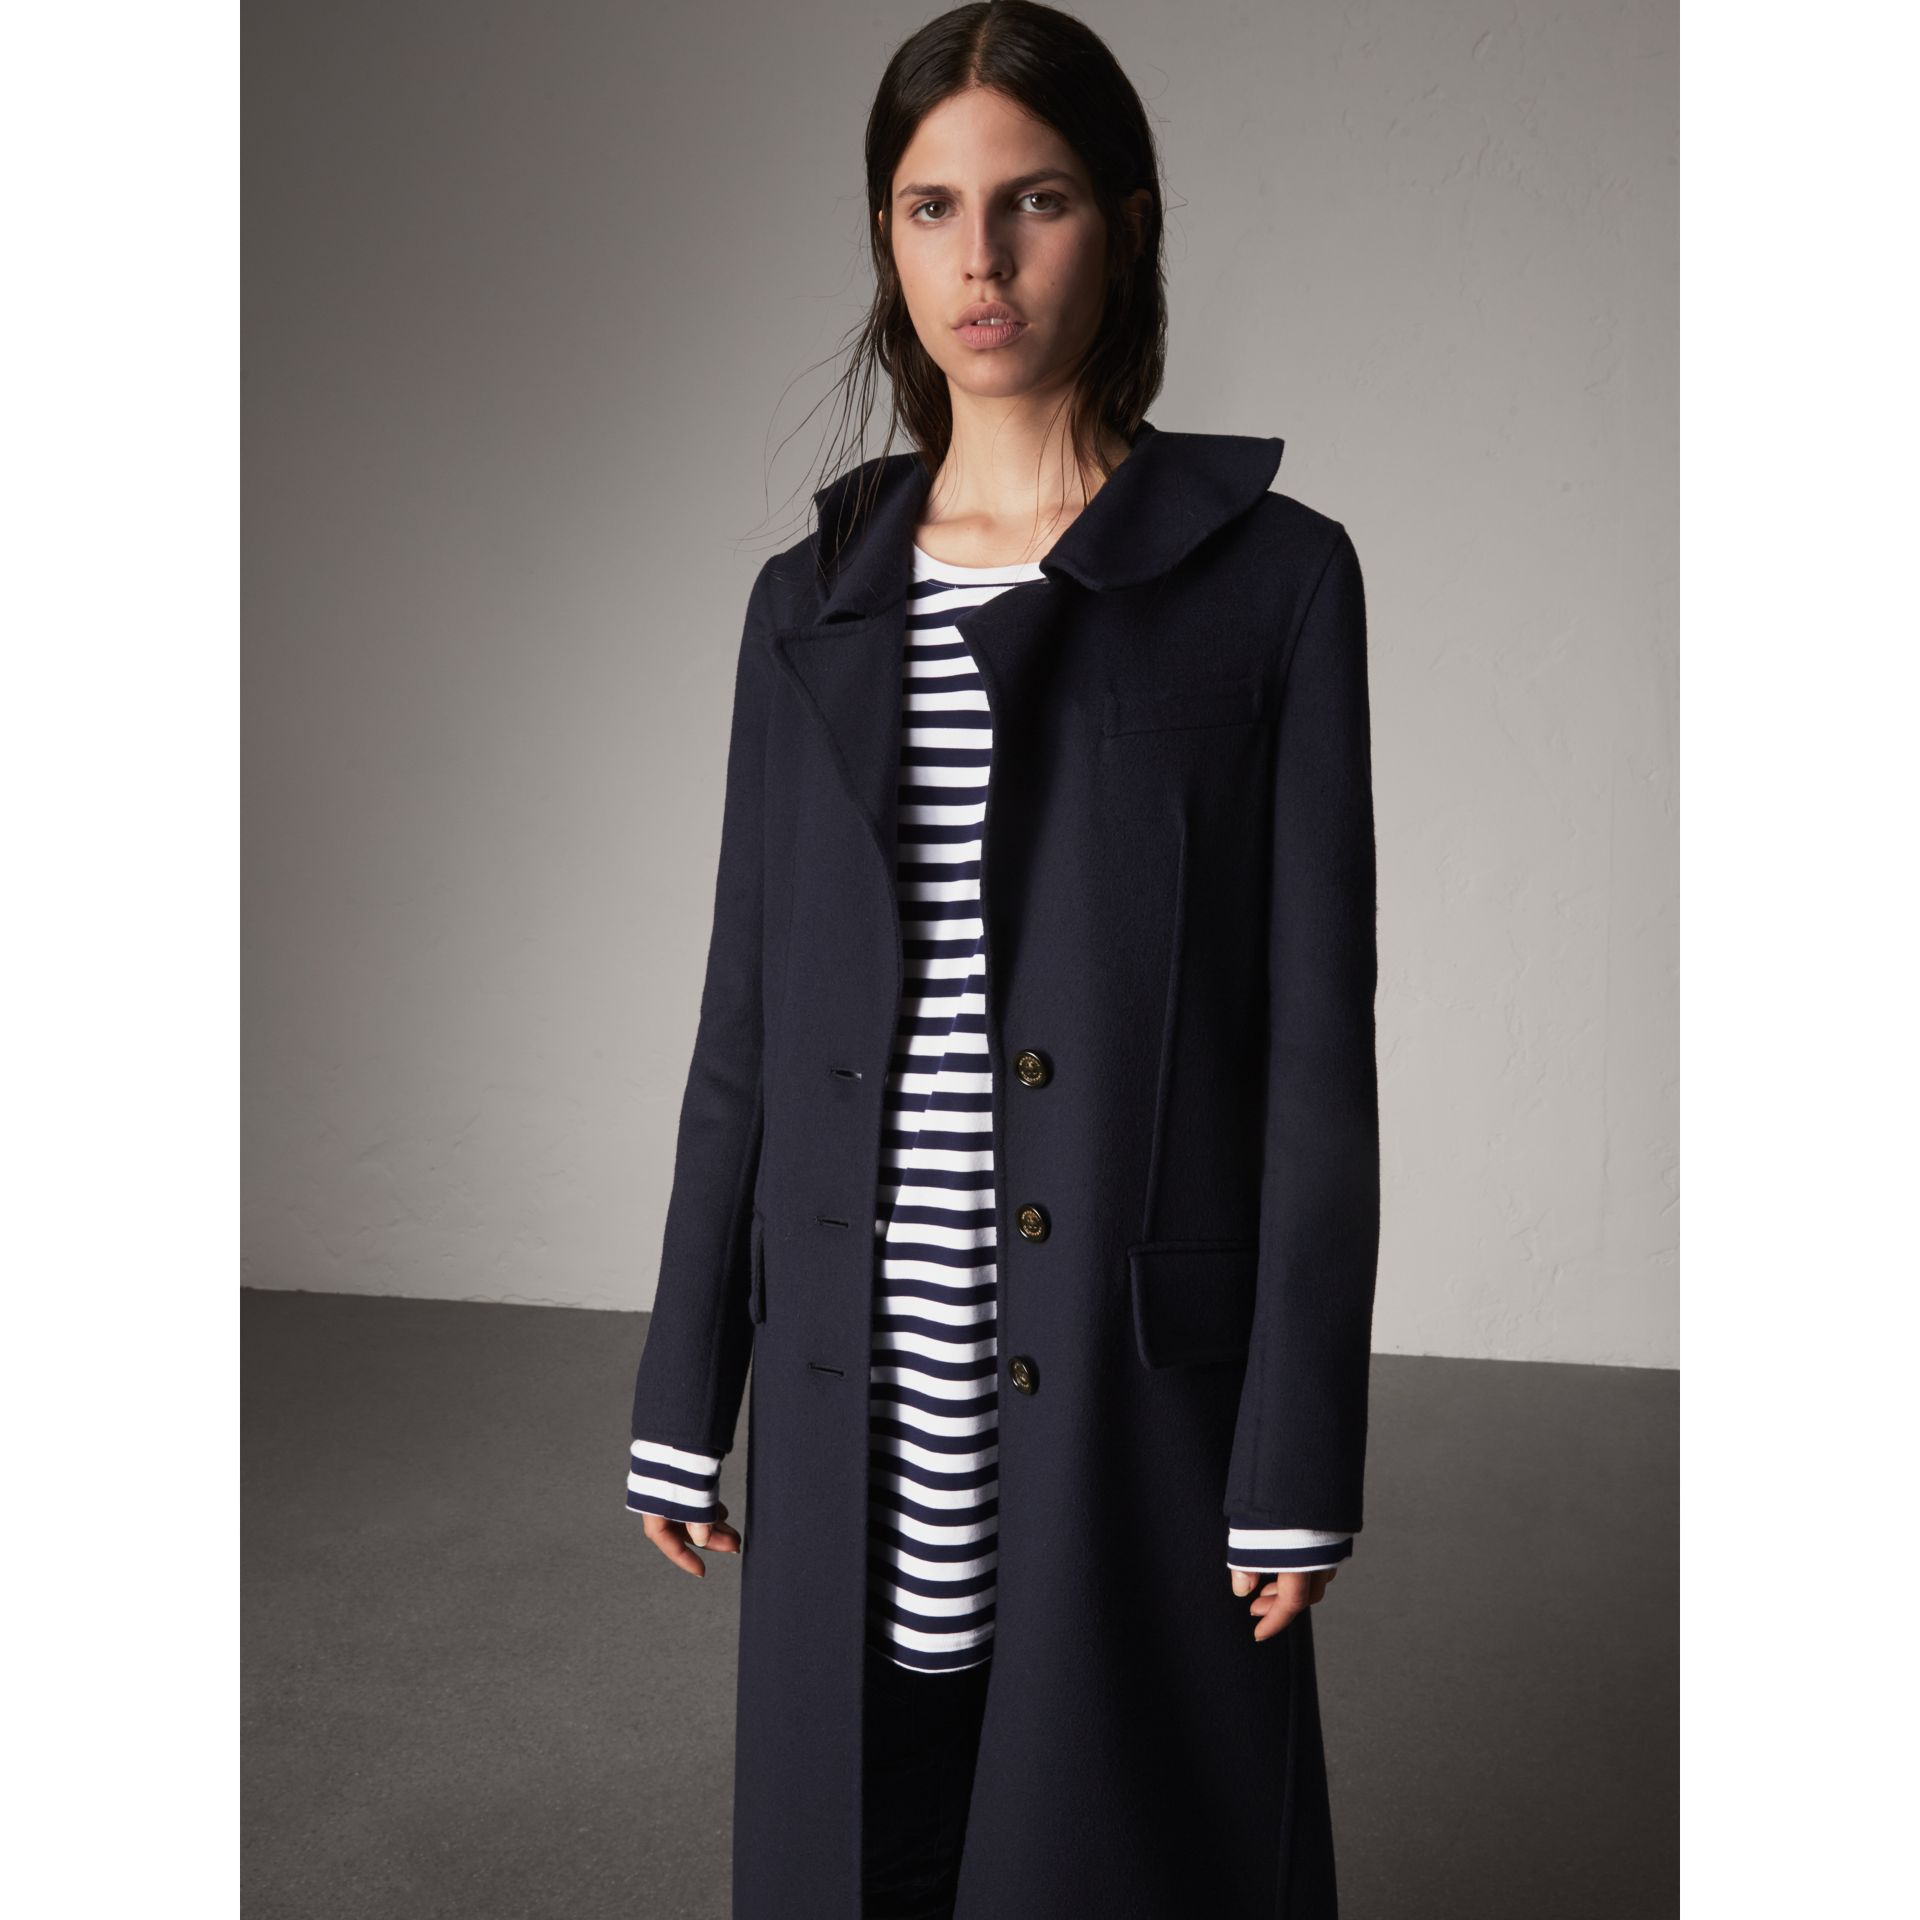 Ruffled Collar Wool Cashmere Coat in Navy - Women | Burberry - gallery image 5